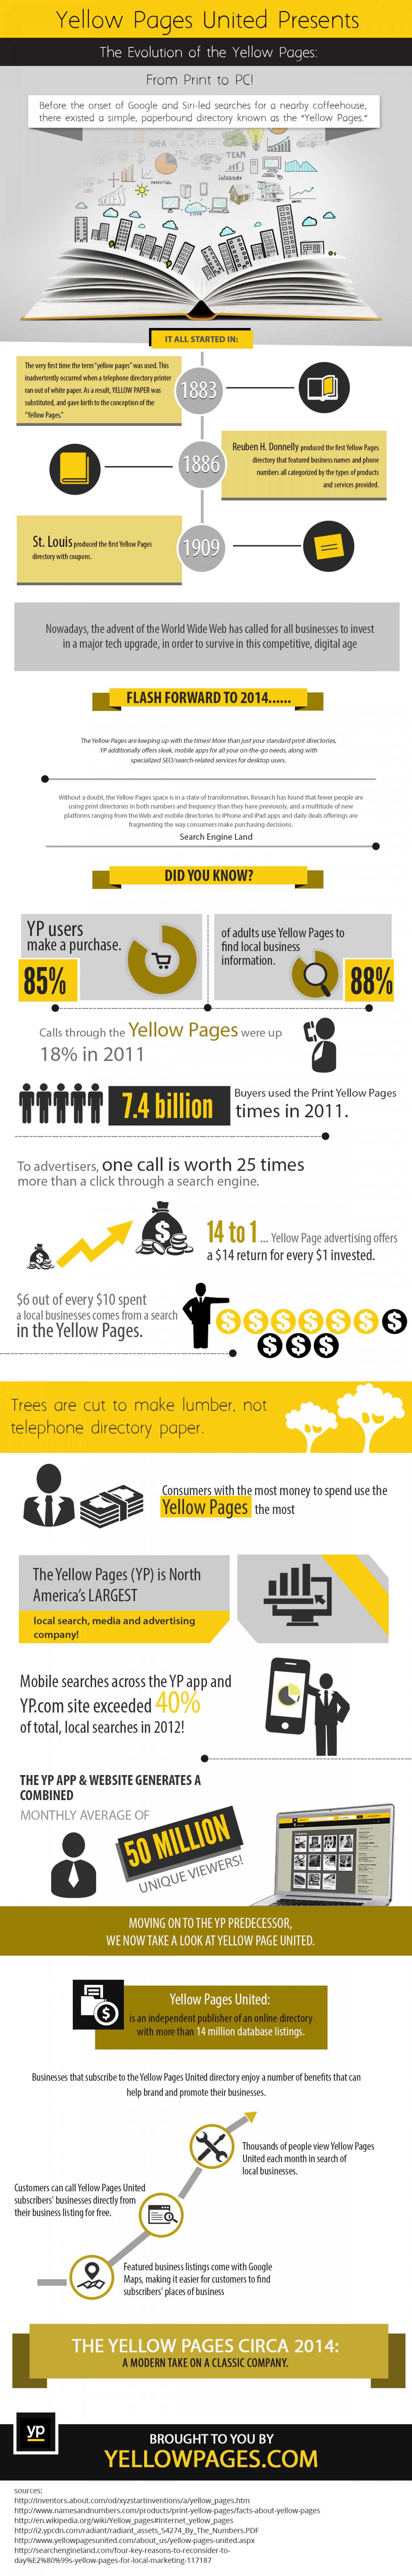 Yellow Pages United Presents: The Evolution of the Yellow Pages....From Print to PC! Infographic